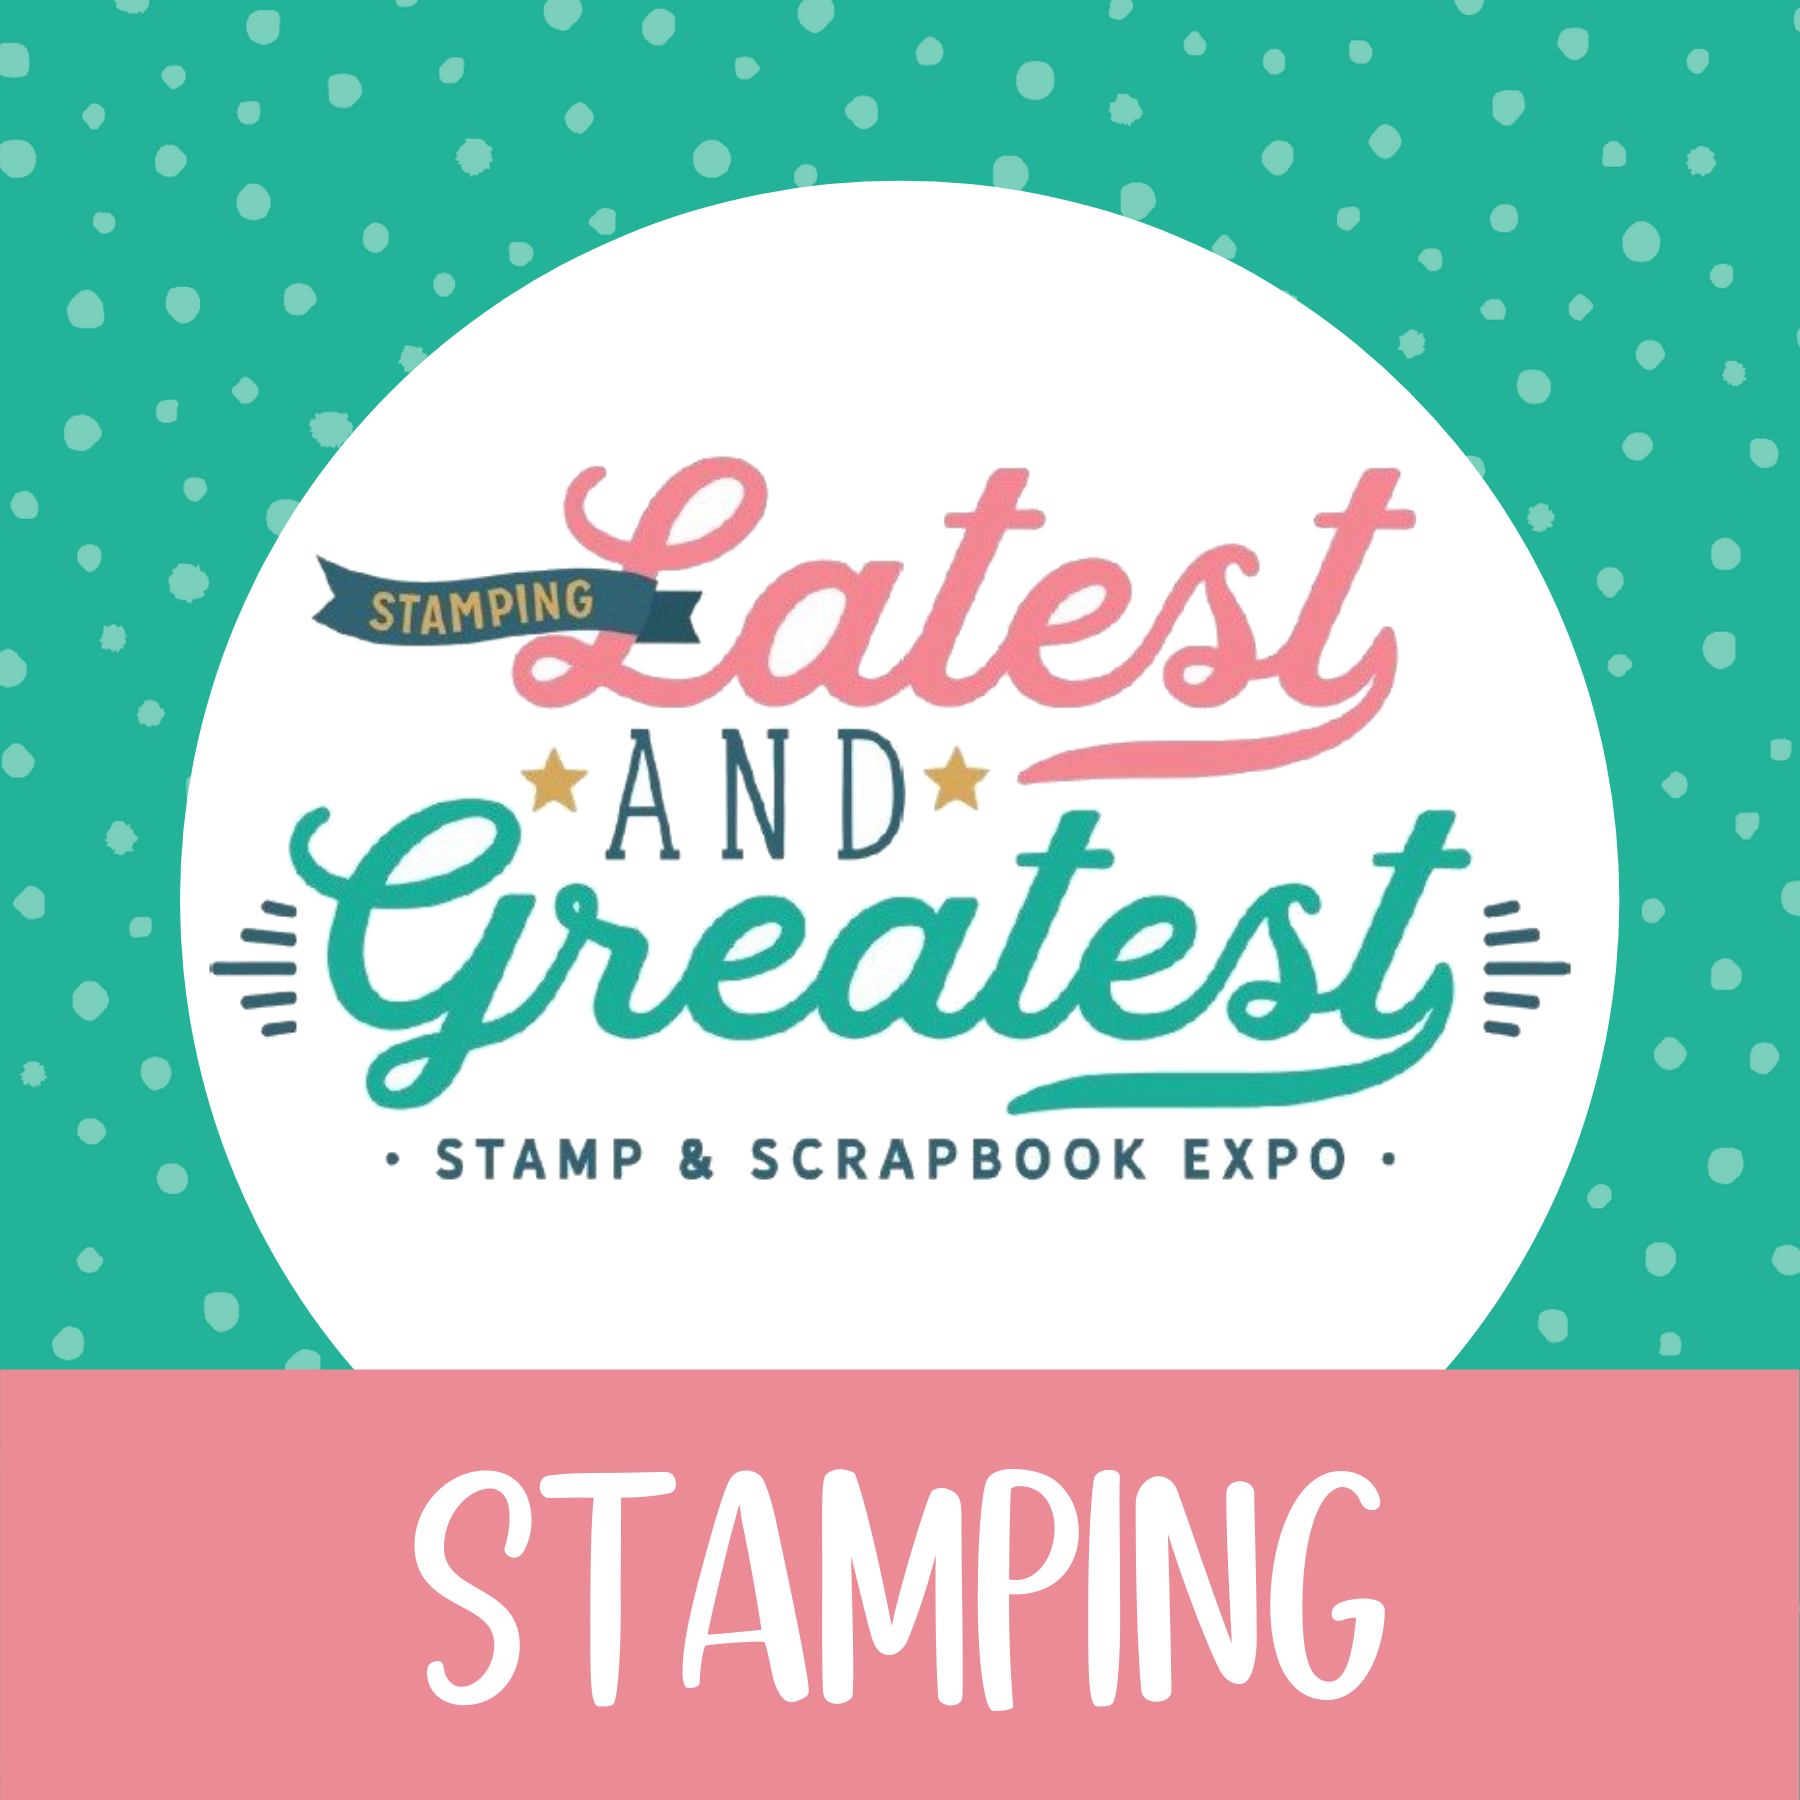 Latest & Greatest Workshop Kit: Stamping